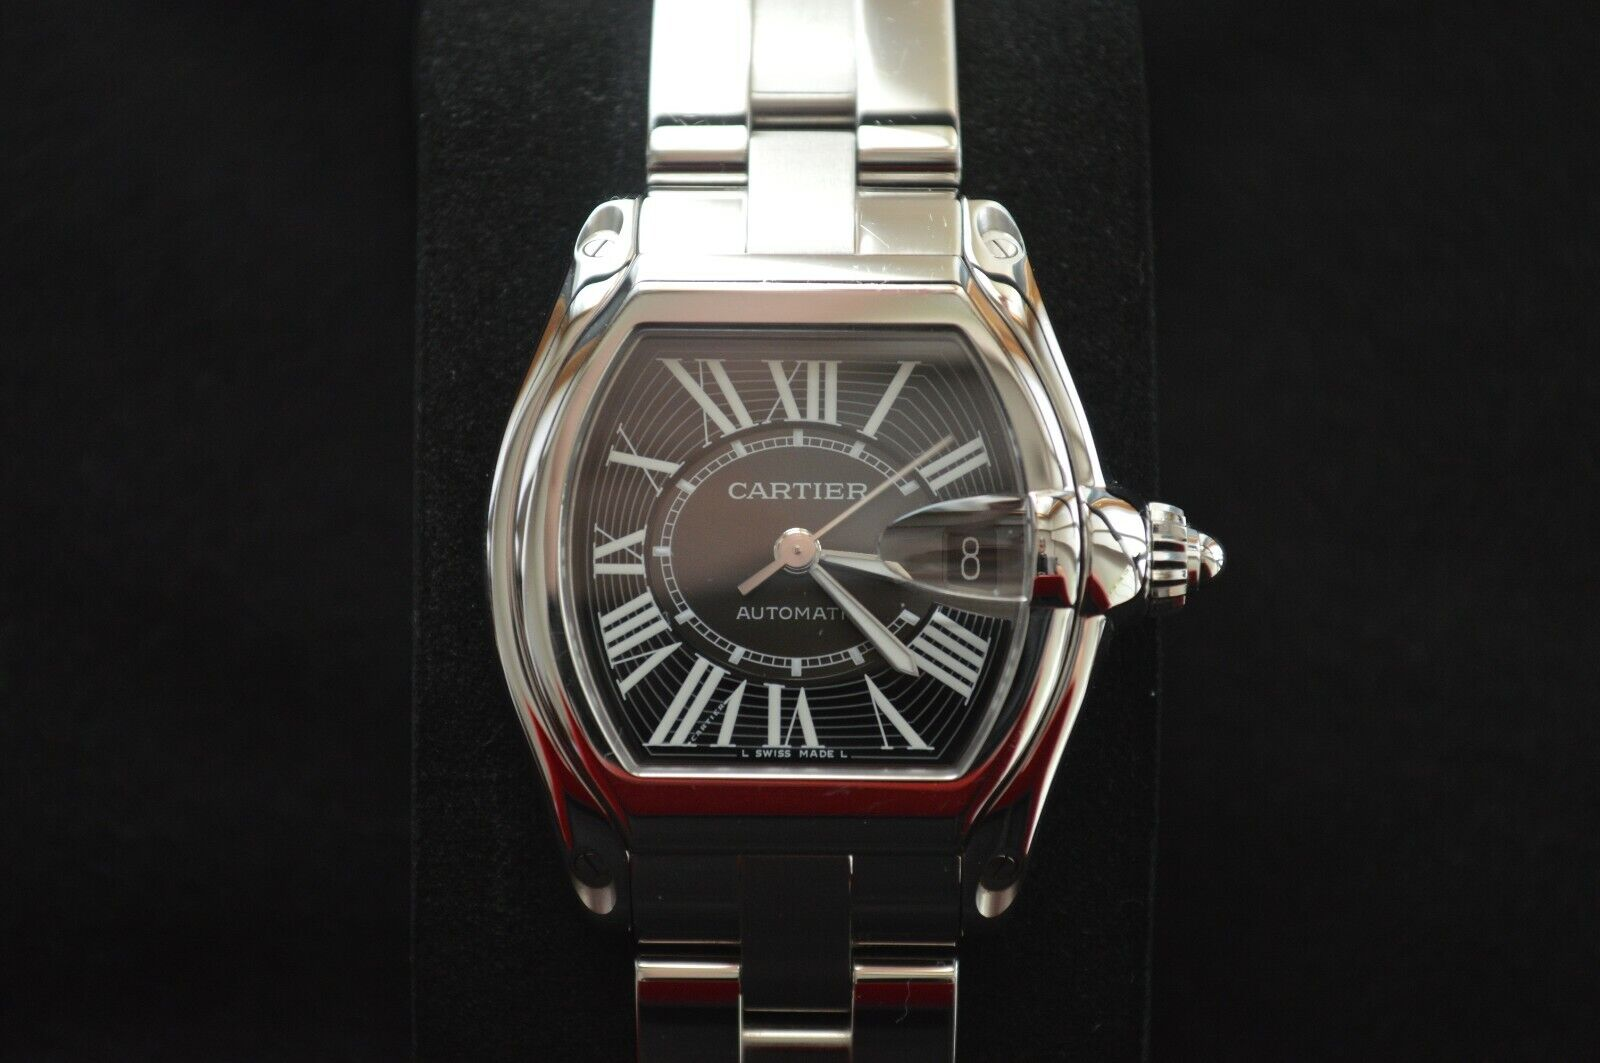 CARTIER ROADSTER 2510 Large Automatic Steel Men's Watch Double Strap Box Papers - watch picture 1